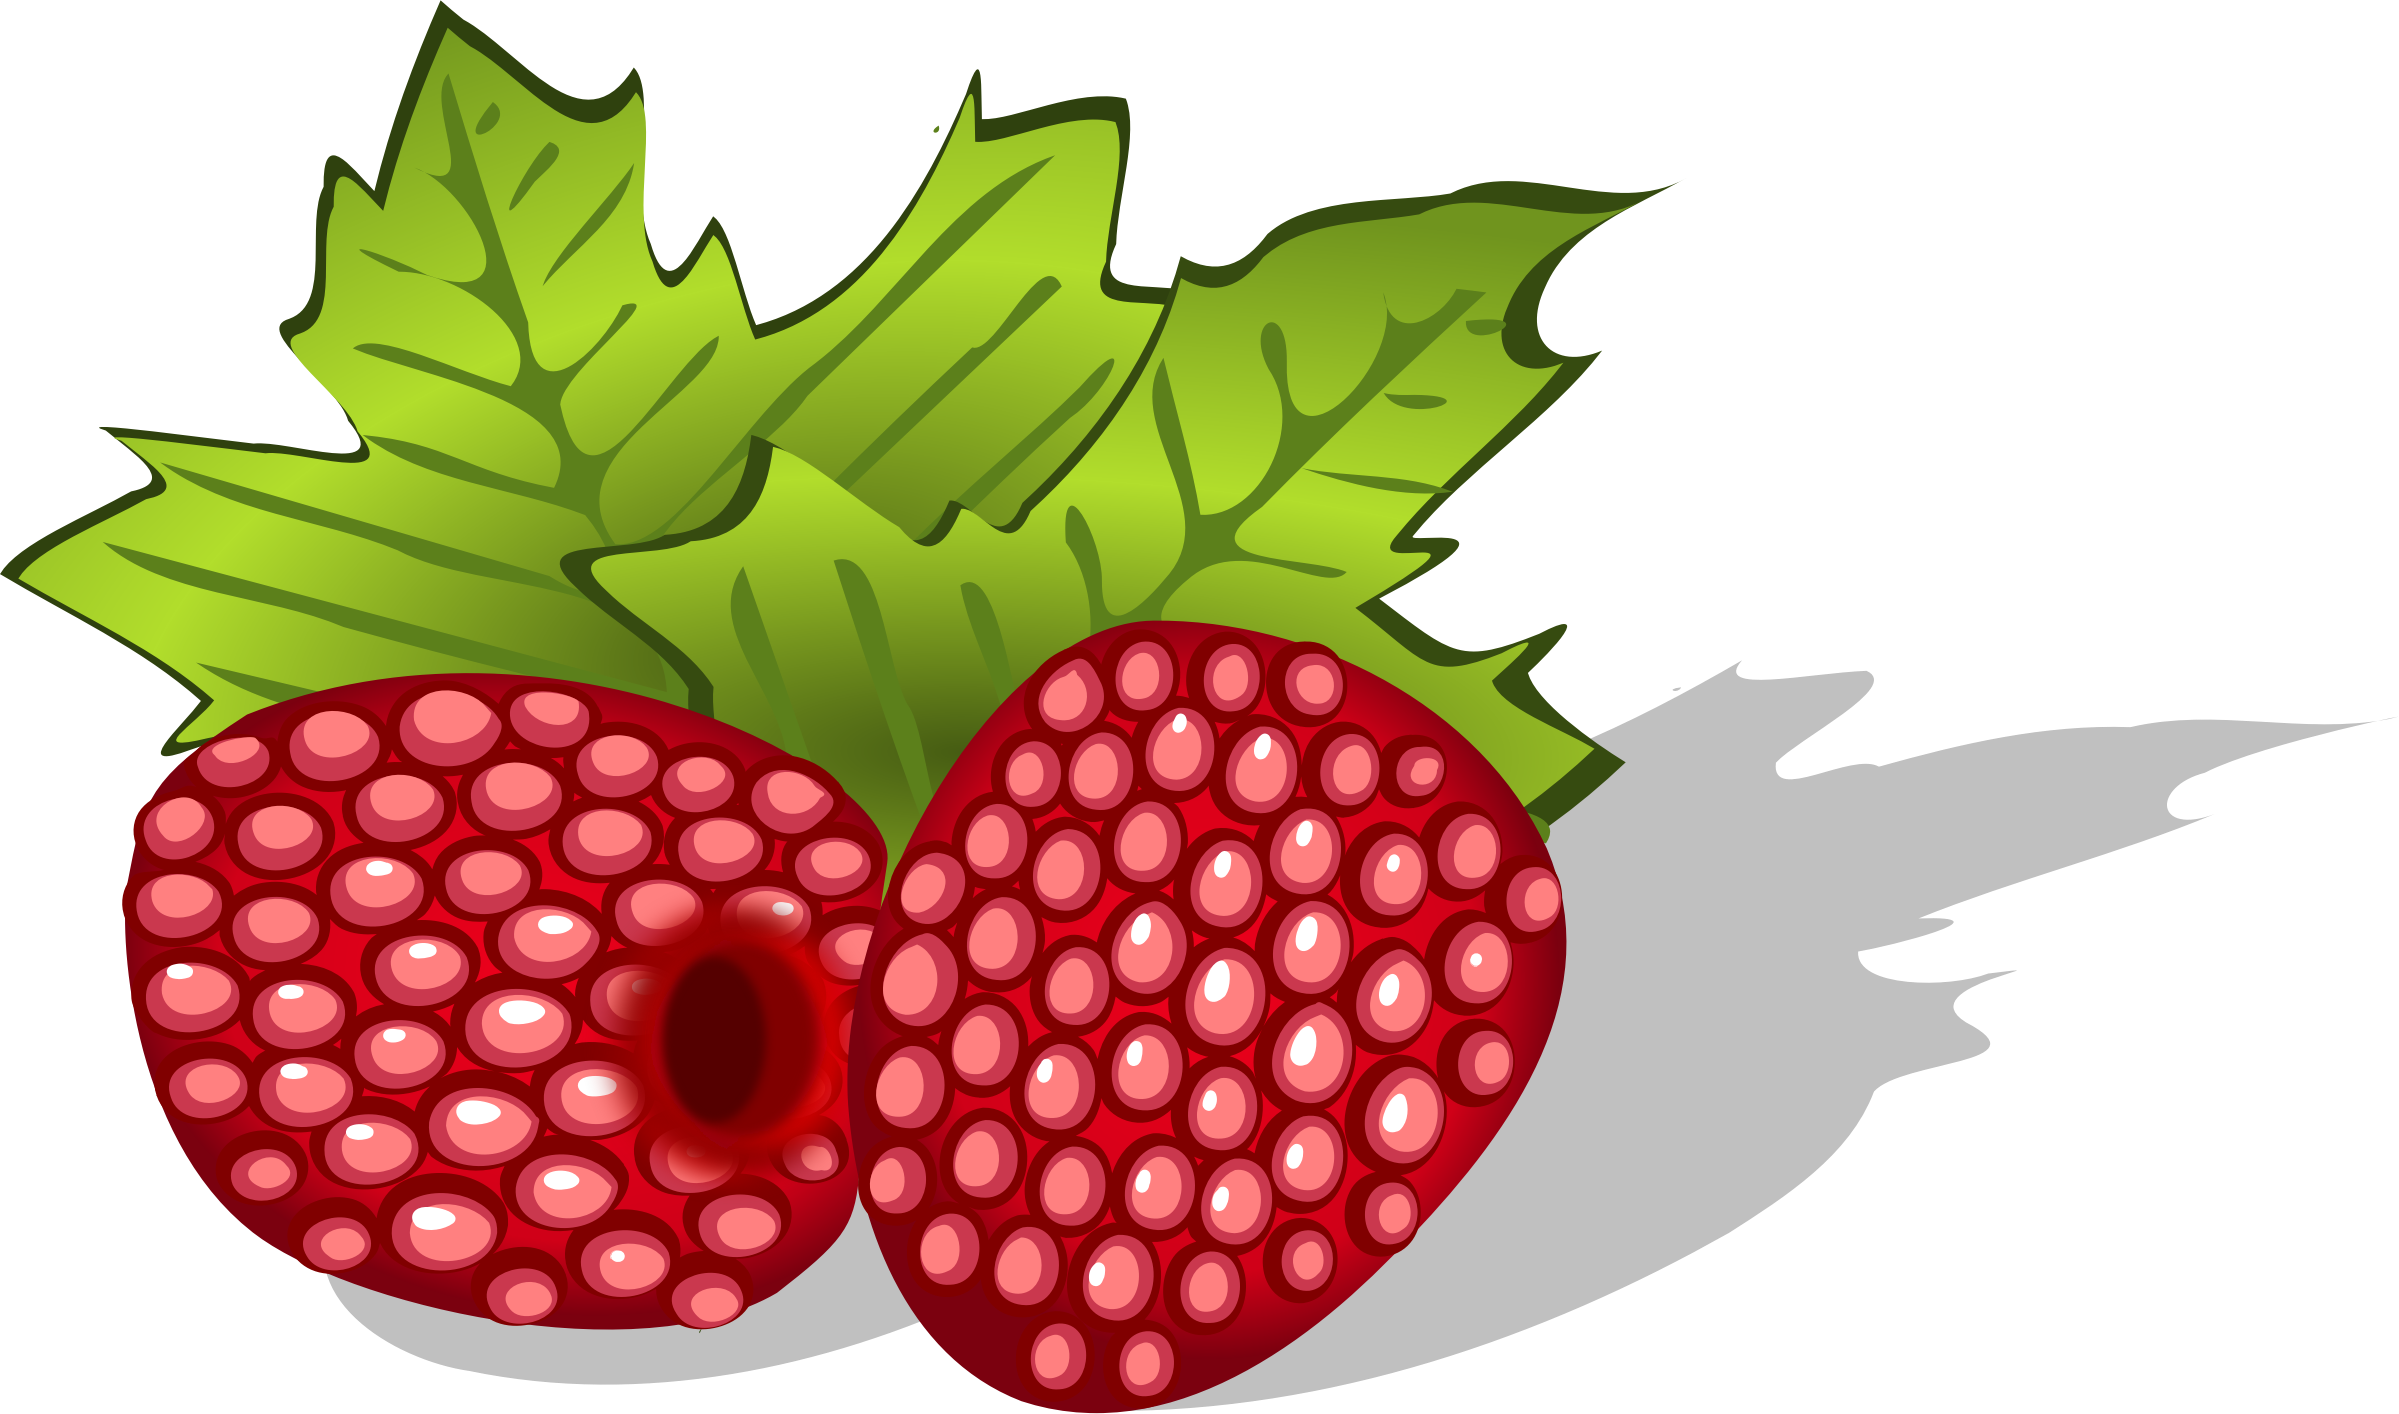 Berry vector red indian. Collection of free berries